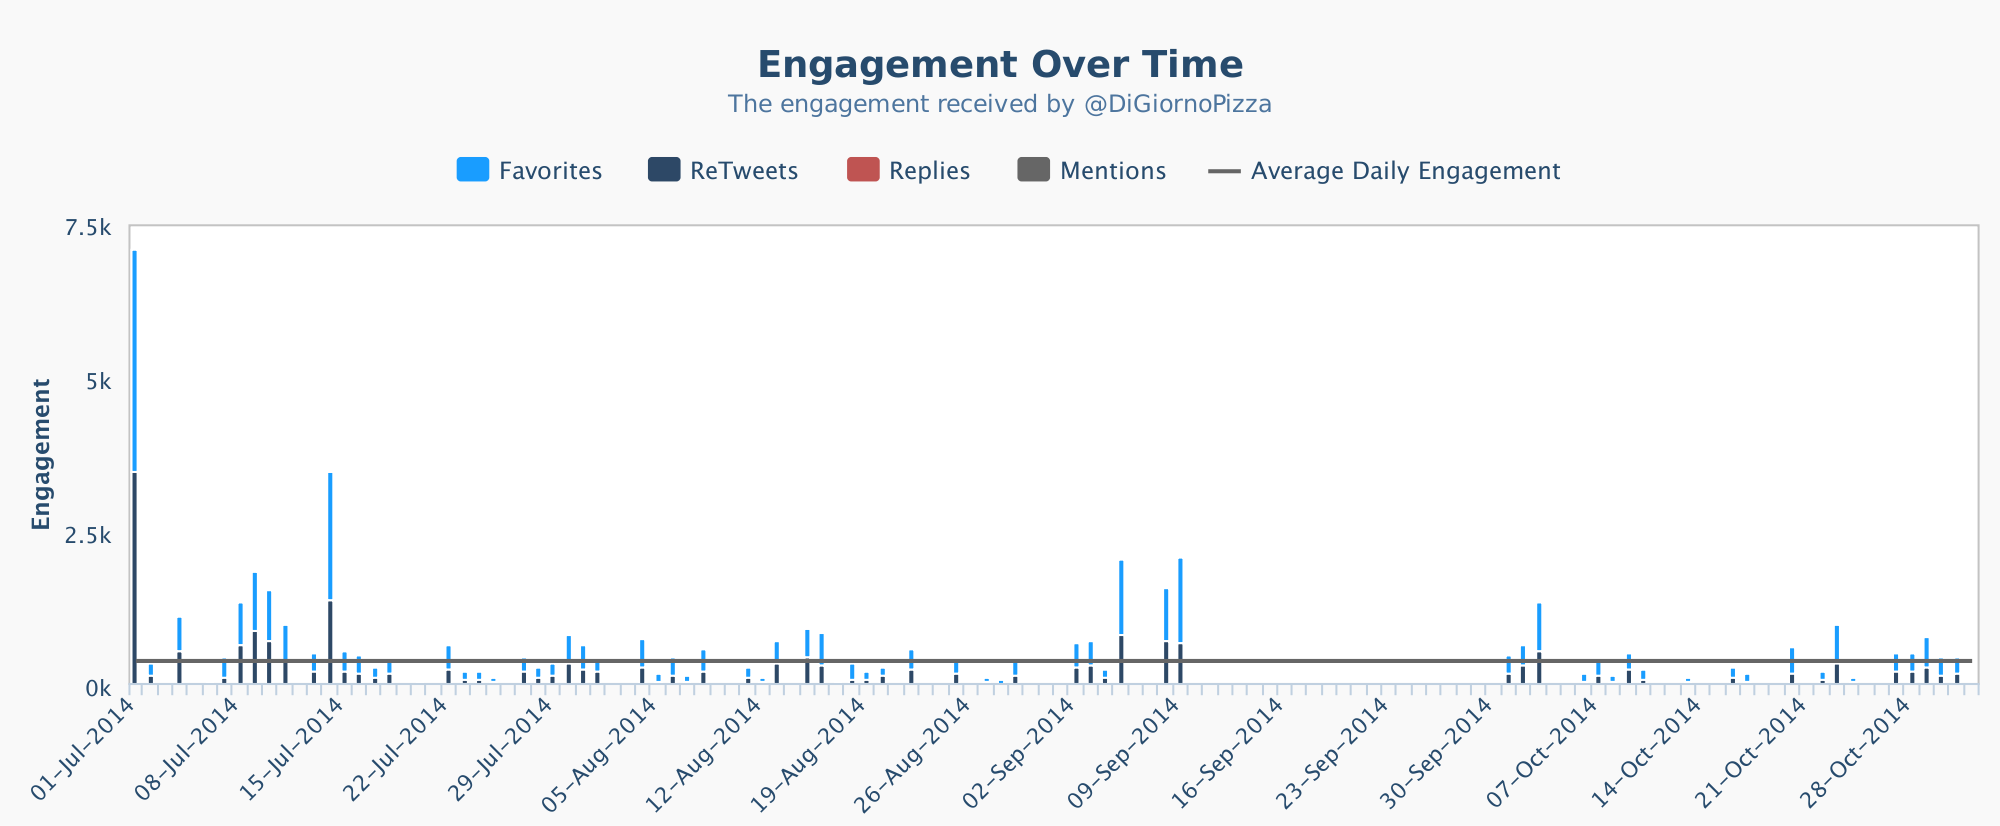 Engagement graph before after DiGiorno pizza gaffe